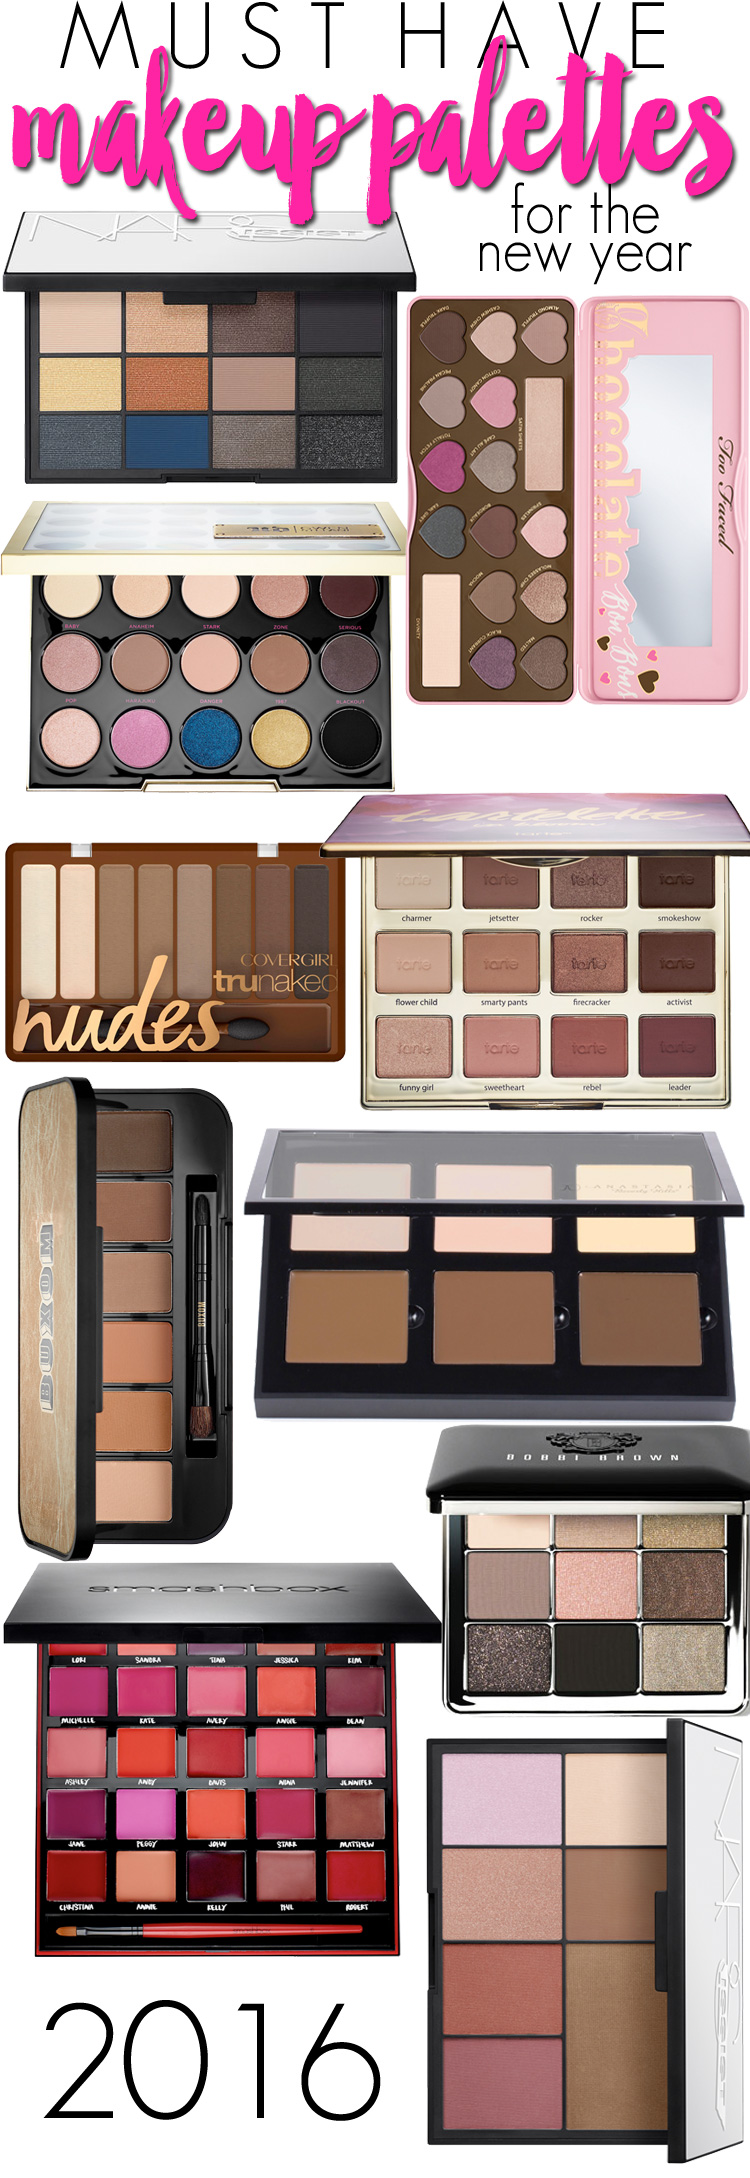 Top 10 Must Have Makeup Palettes for 2016